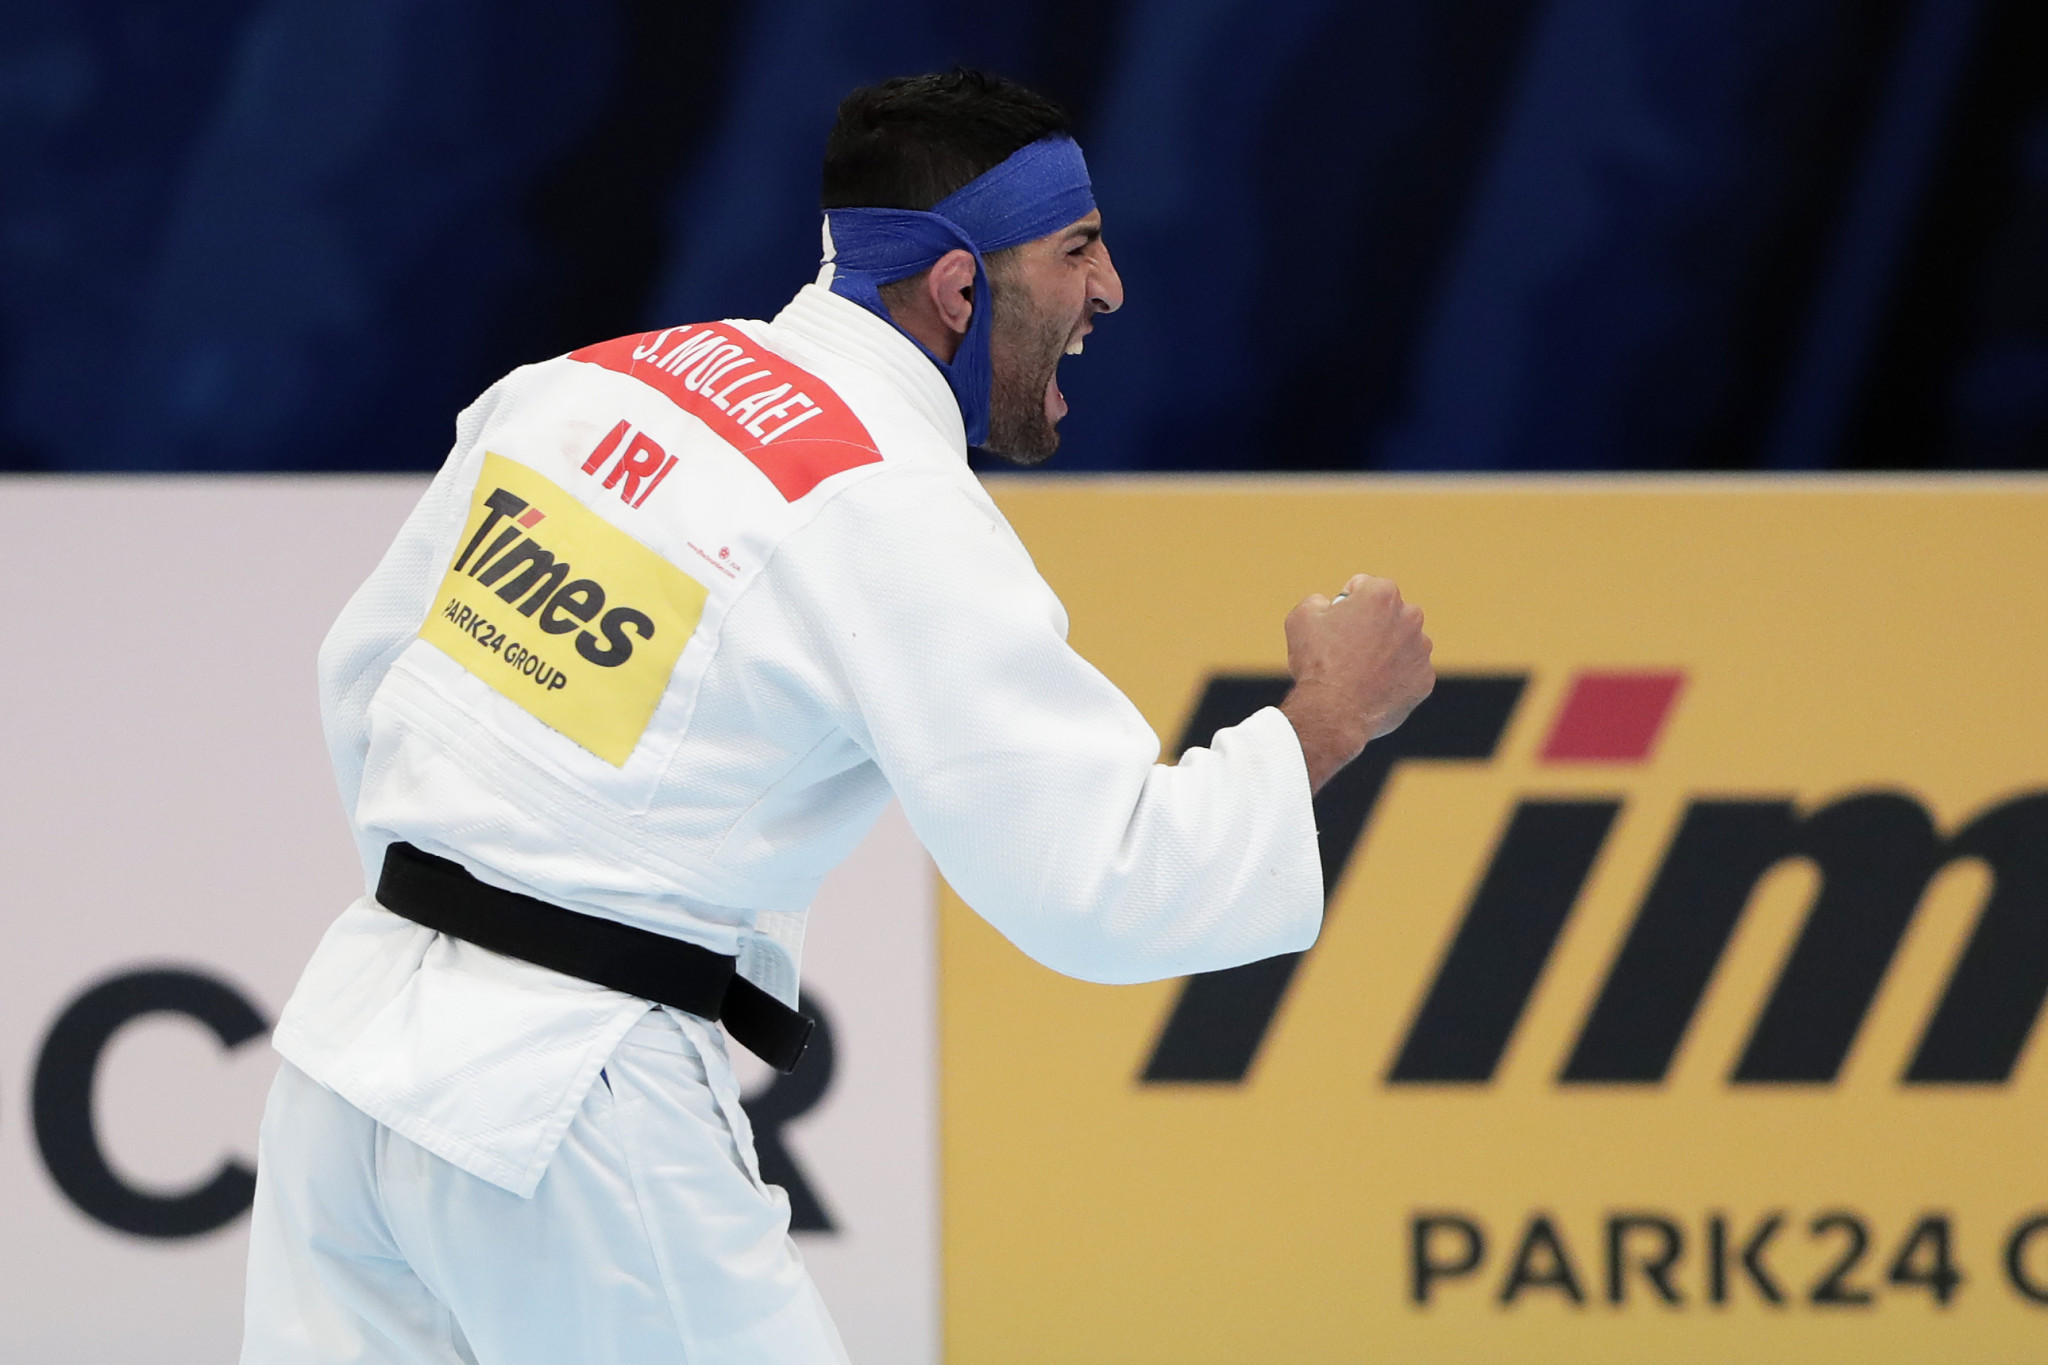 Mollaei cleared to compete for Mongolia at Tokyo 2020 after IOC approves nationality change